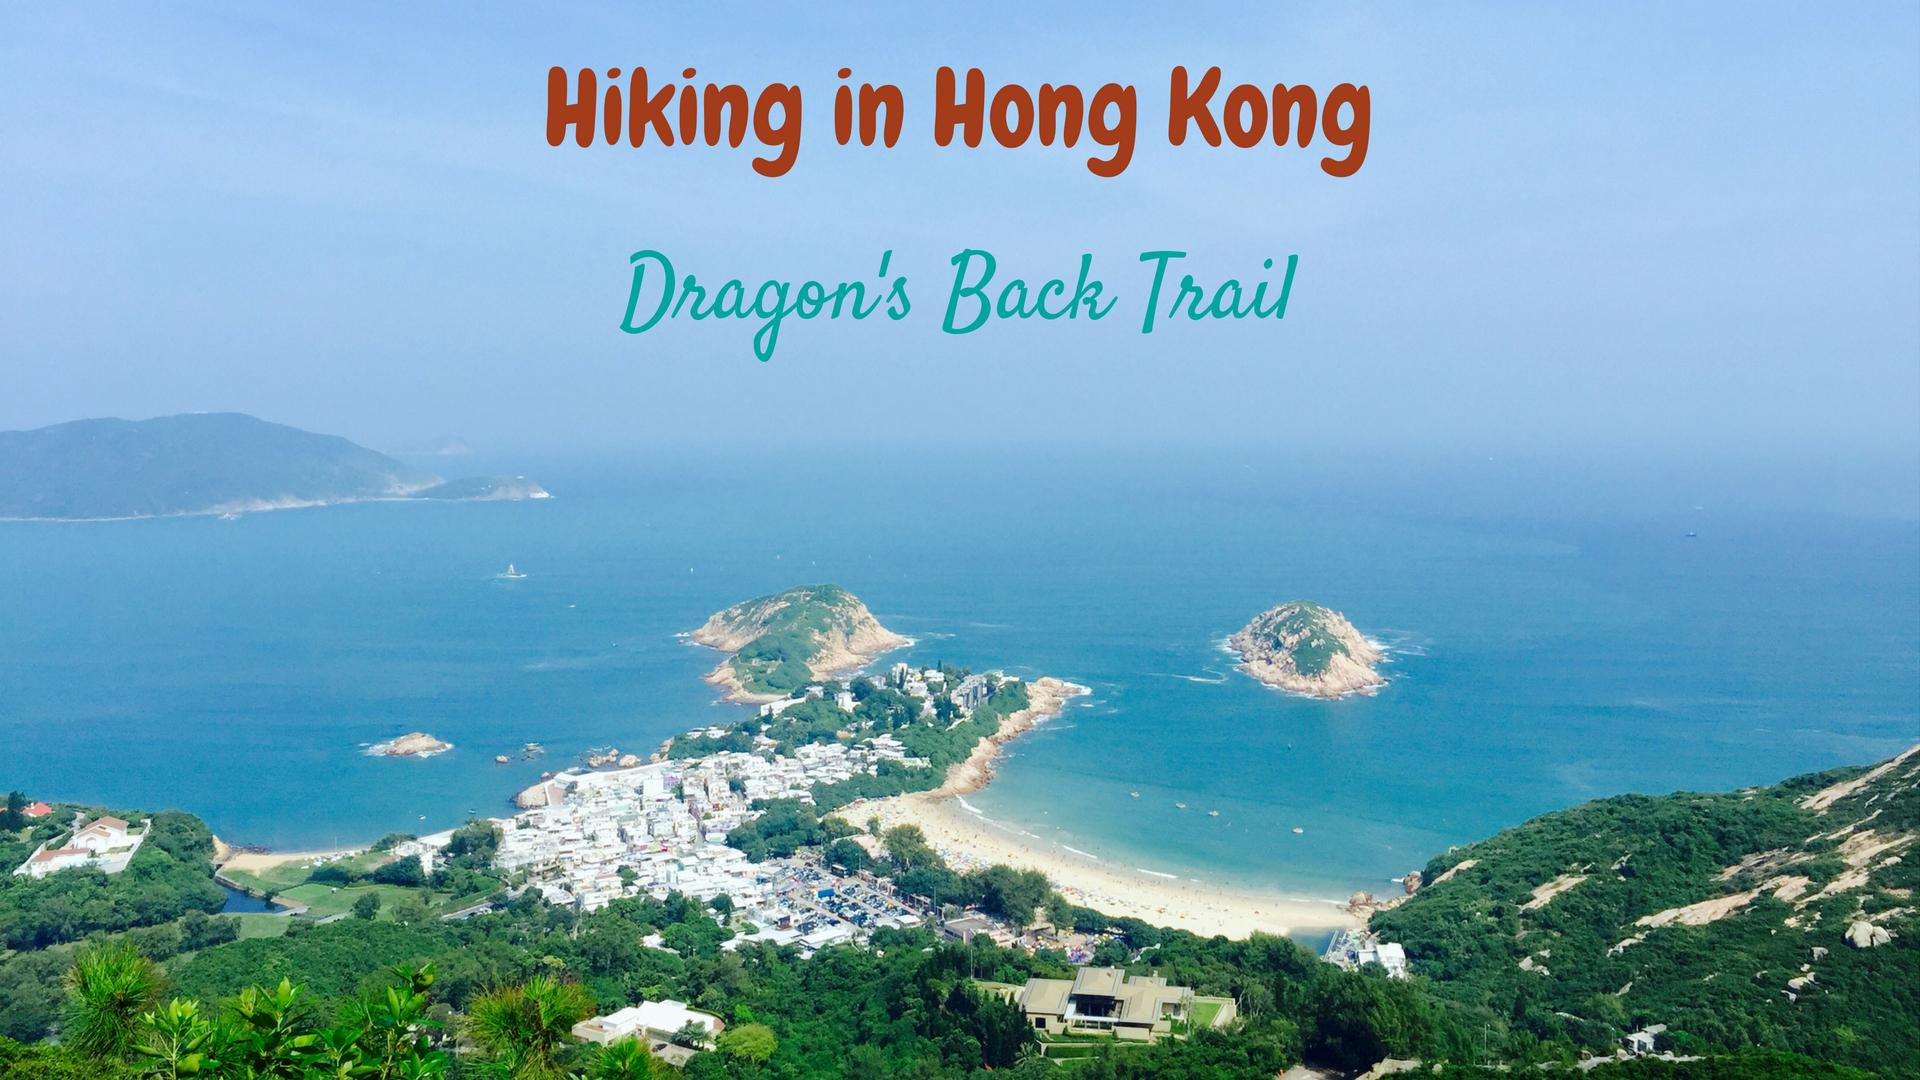 Hiking in Hong Kong : The Dragon's Back Trail